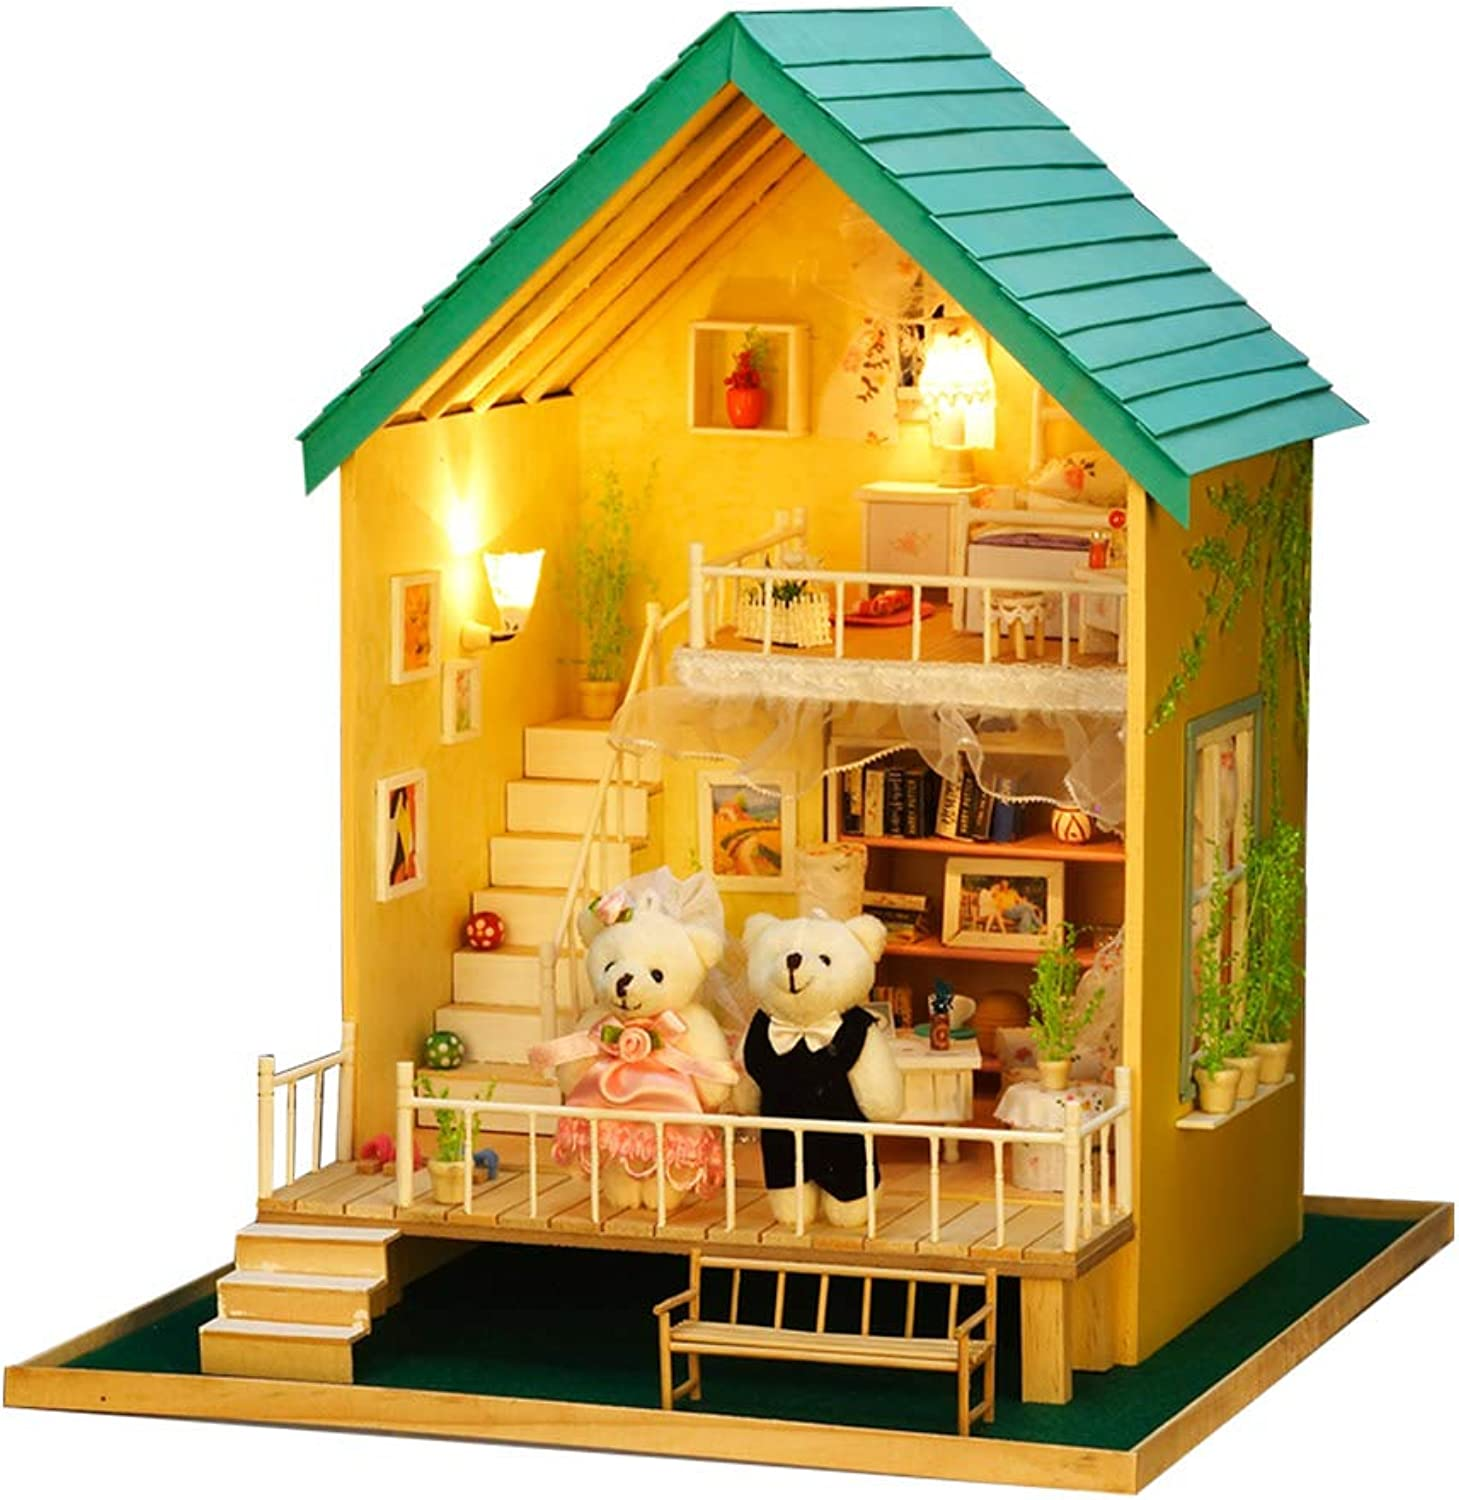 TAEONY DIY Dolls House, Wooden Dollhouse Miniature Furniture Kit with LED Light Creative Furniture Cabin for Kids and Adults Romantic Garden Birthday Gift